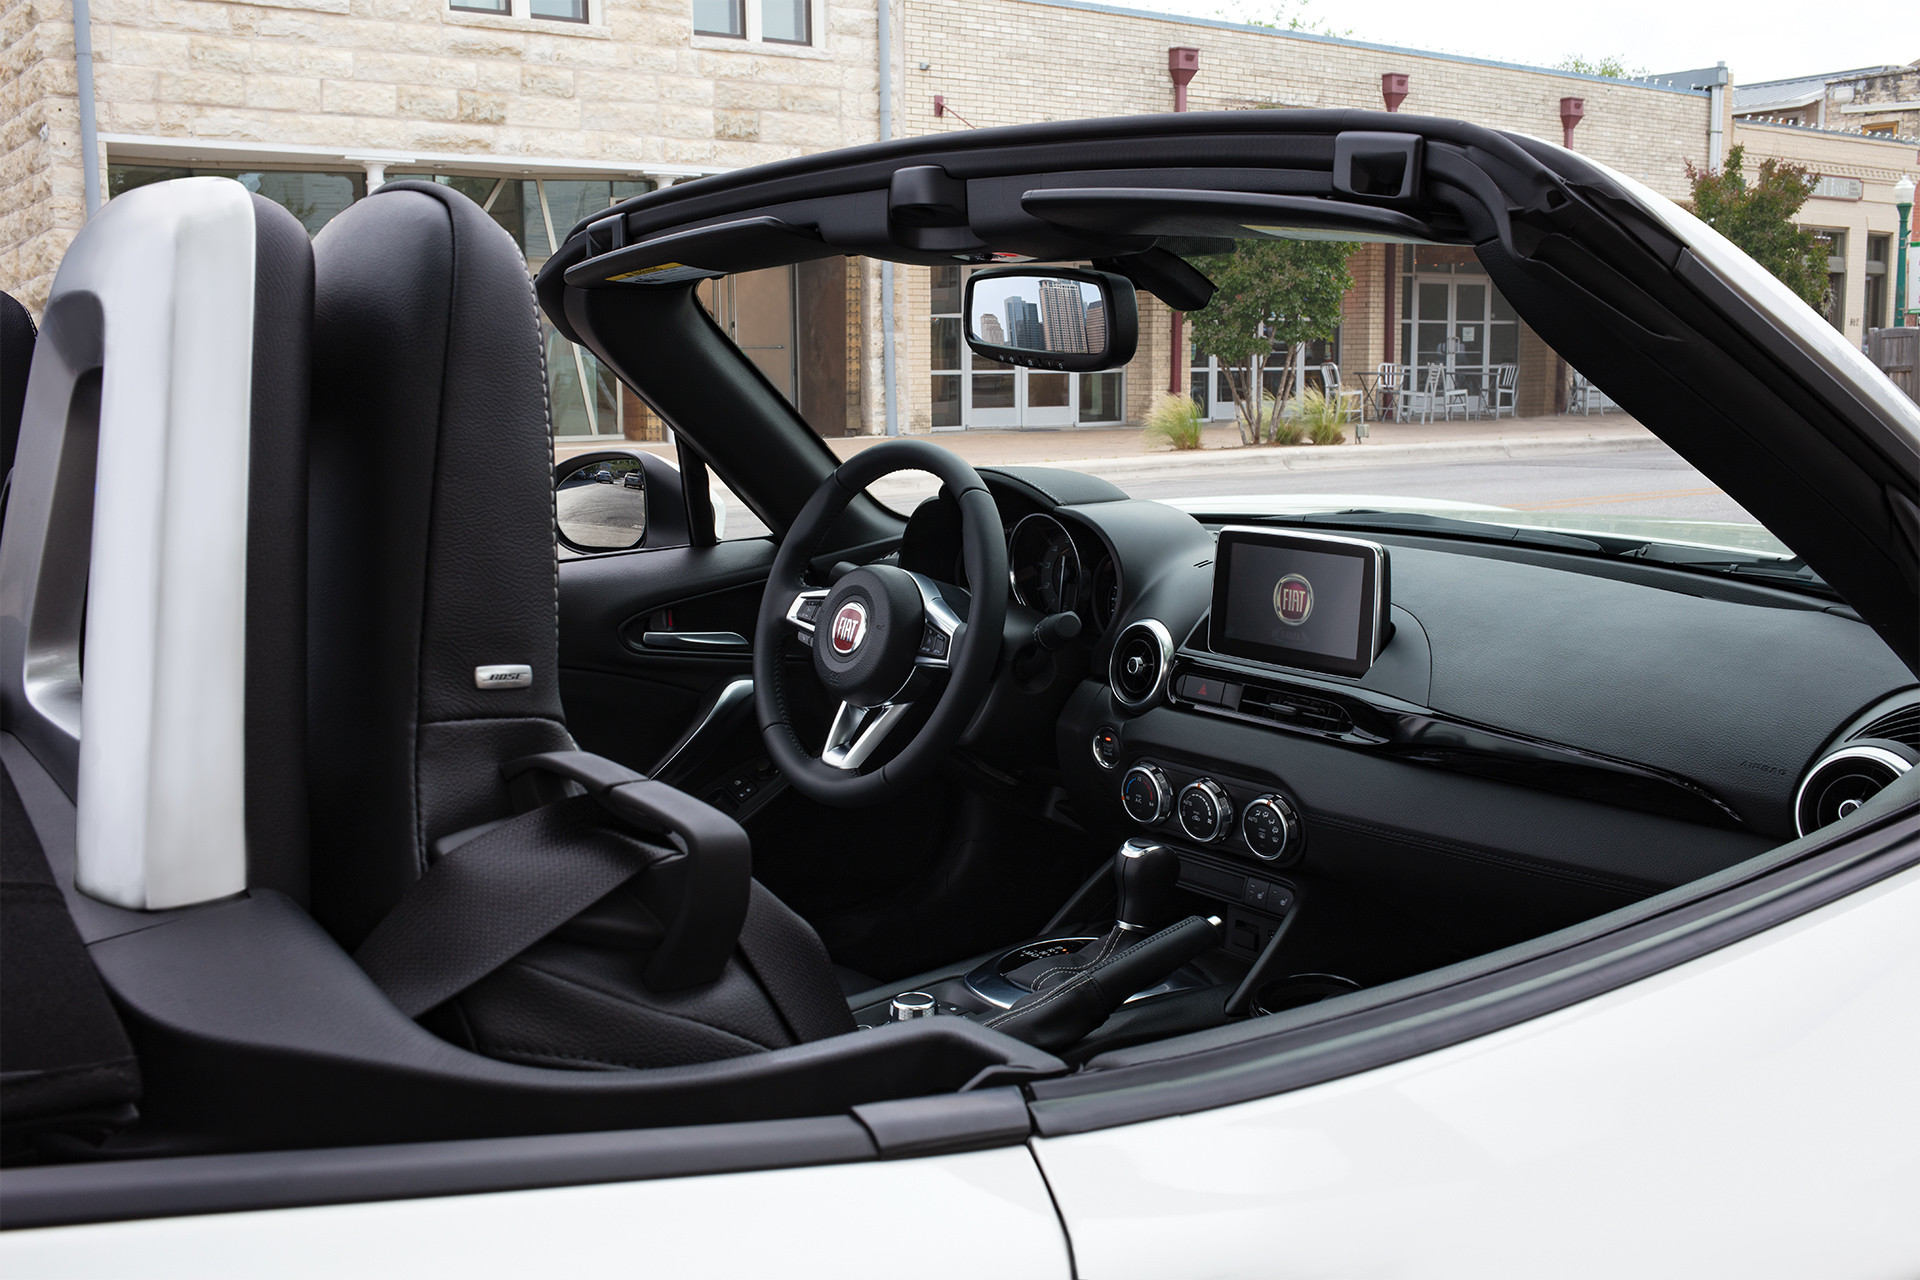 FIAT 124 Spider 2019 – photo de l'habitacle de la console avant